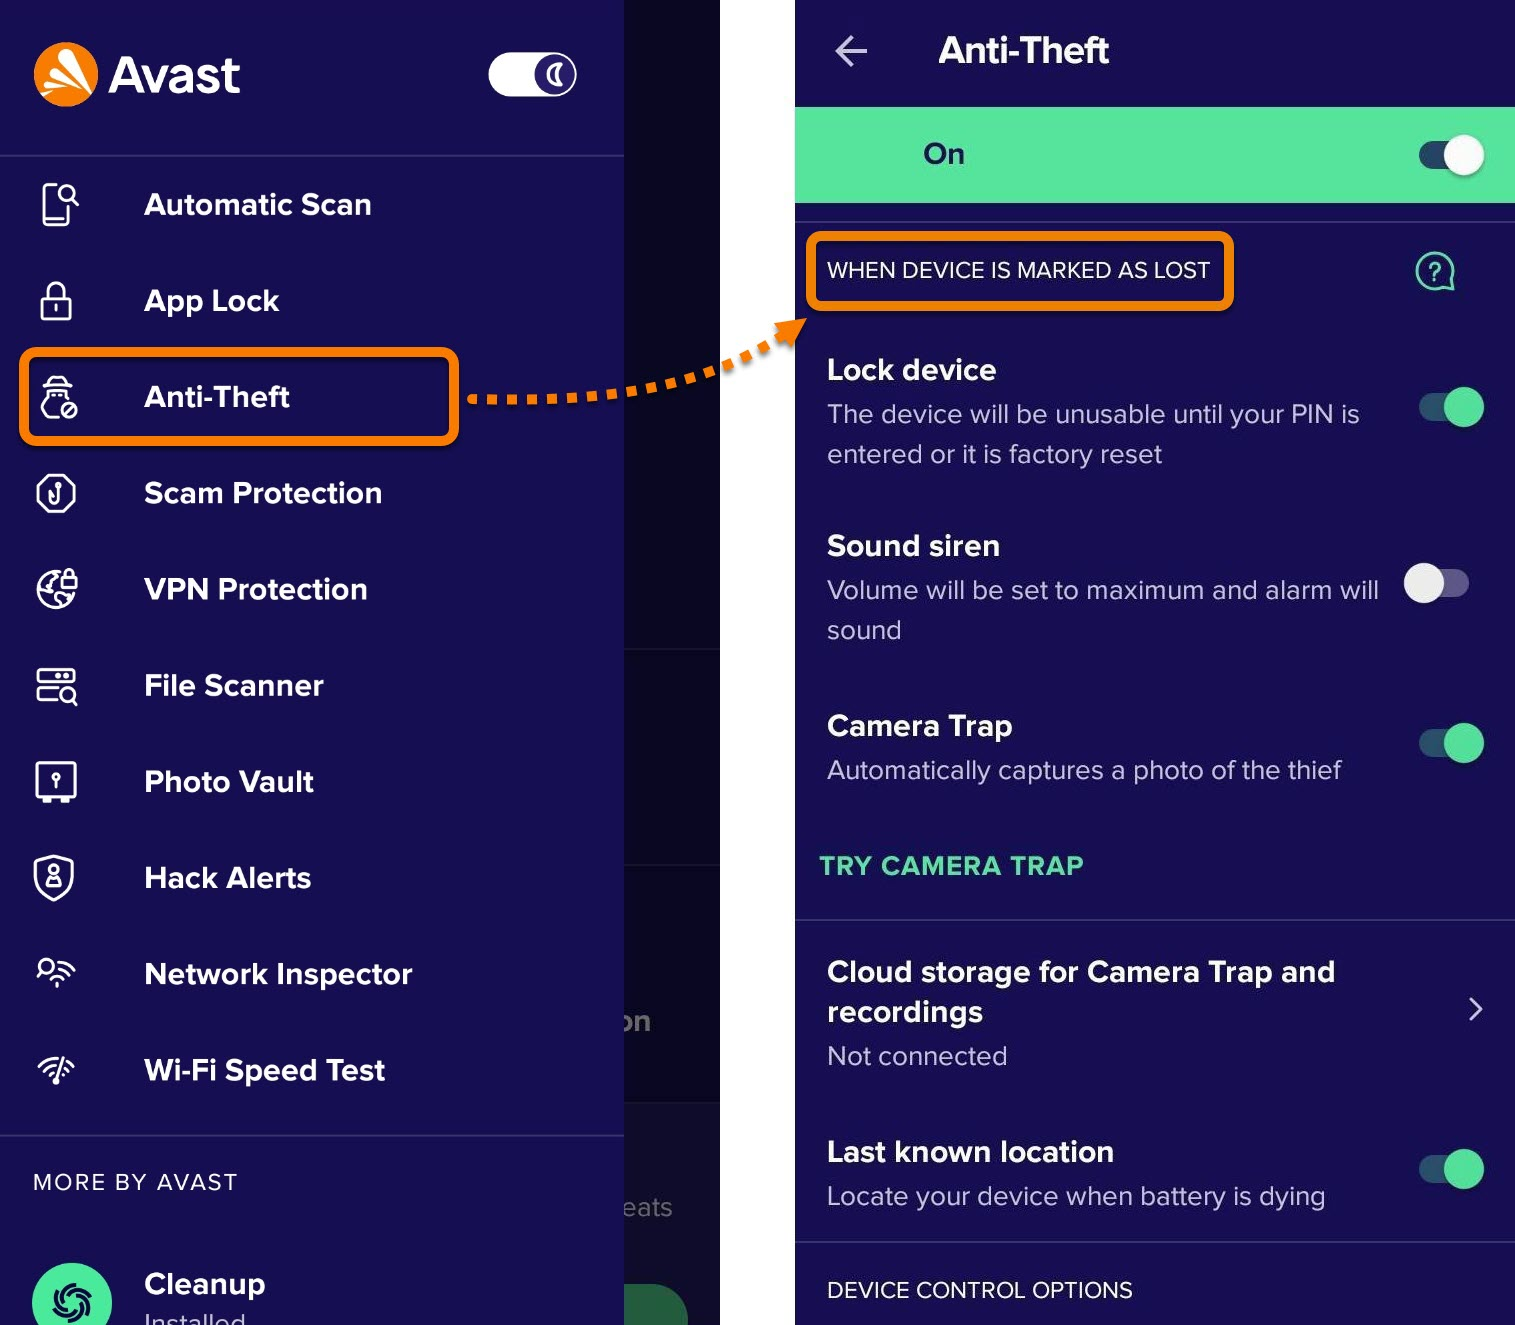 How to control a lost or stolen Android device remotely using Anti-Theft in Avast  Mobile Security   Avast